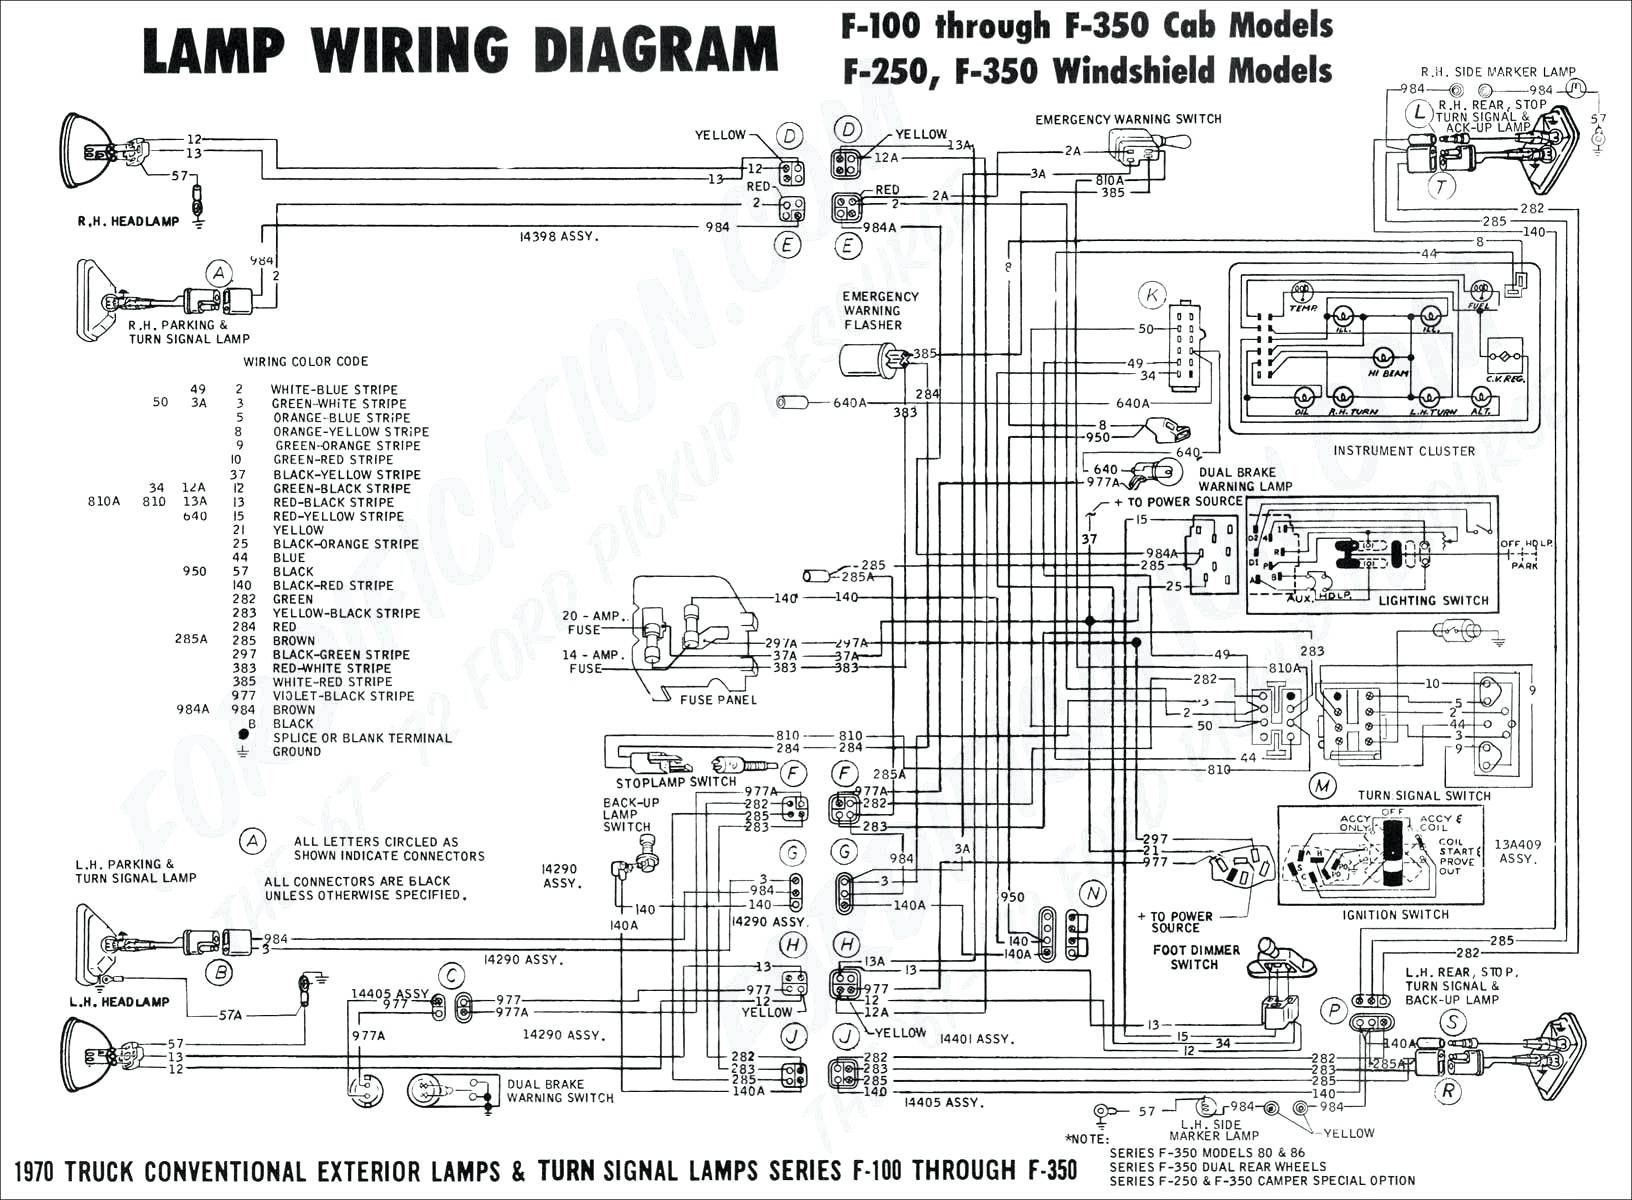 Magnificent 1966 Ford Truck Wiring Diagram Inspiration